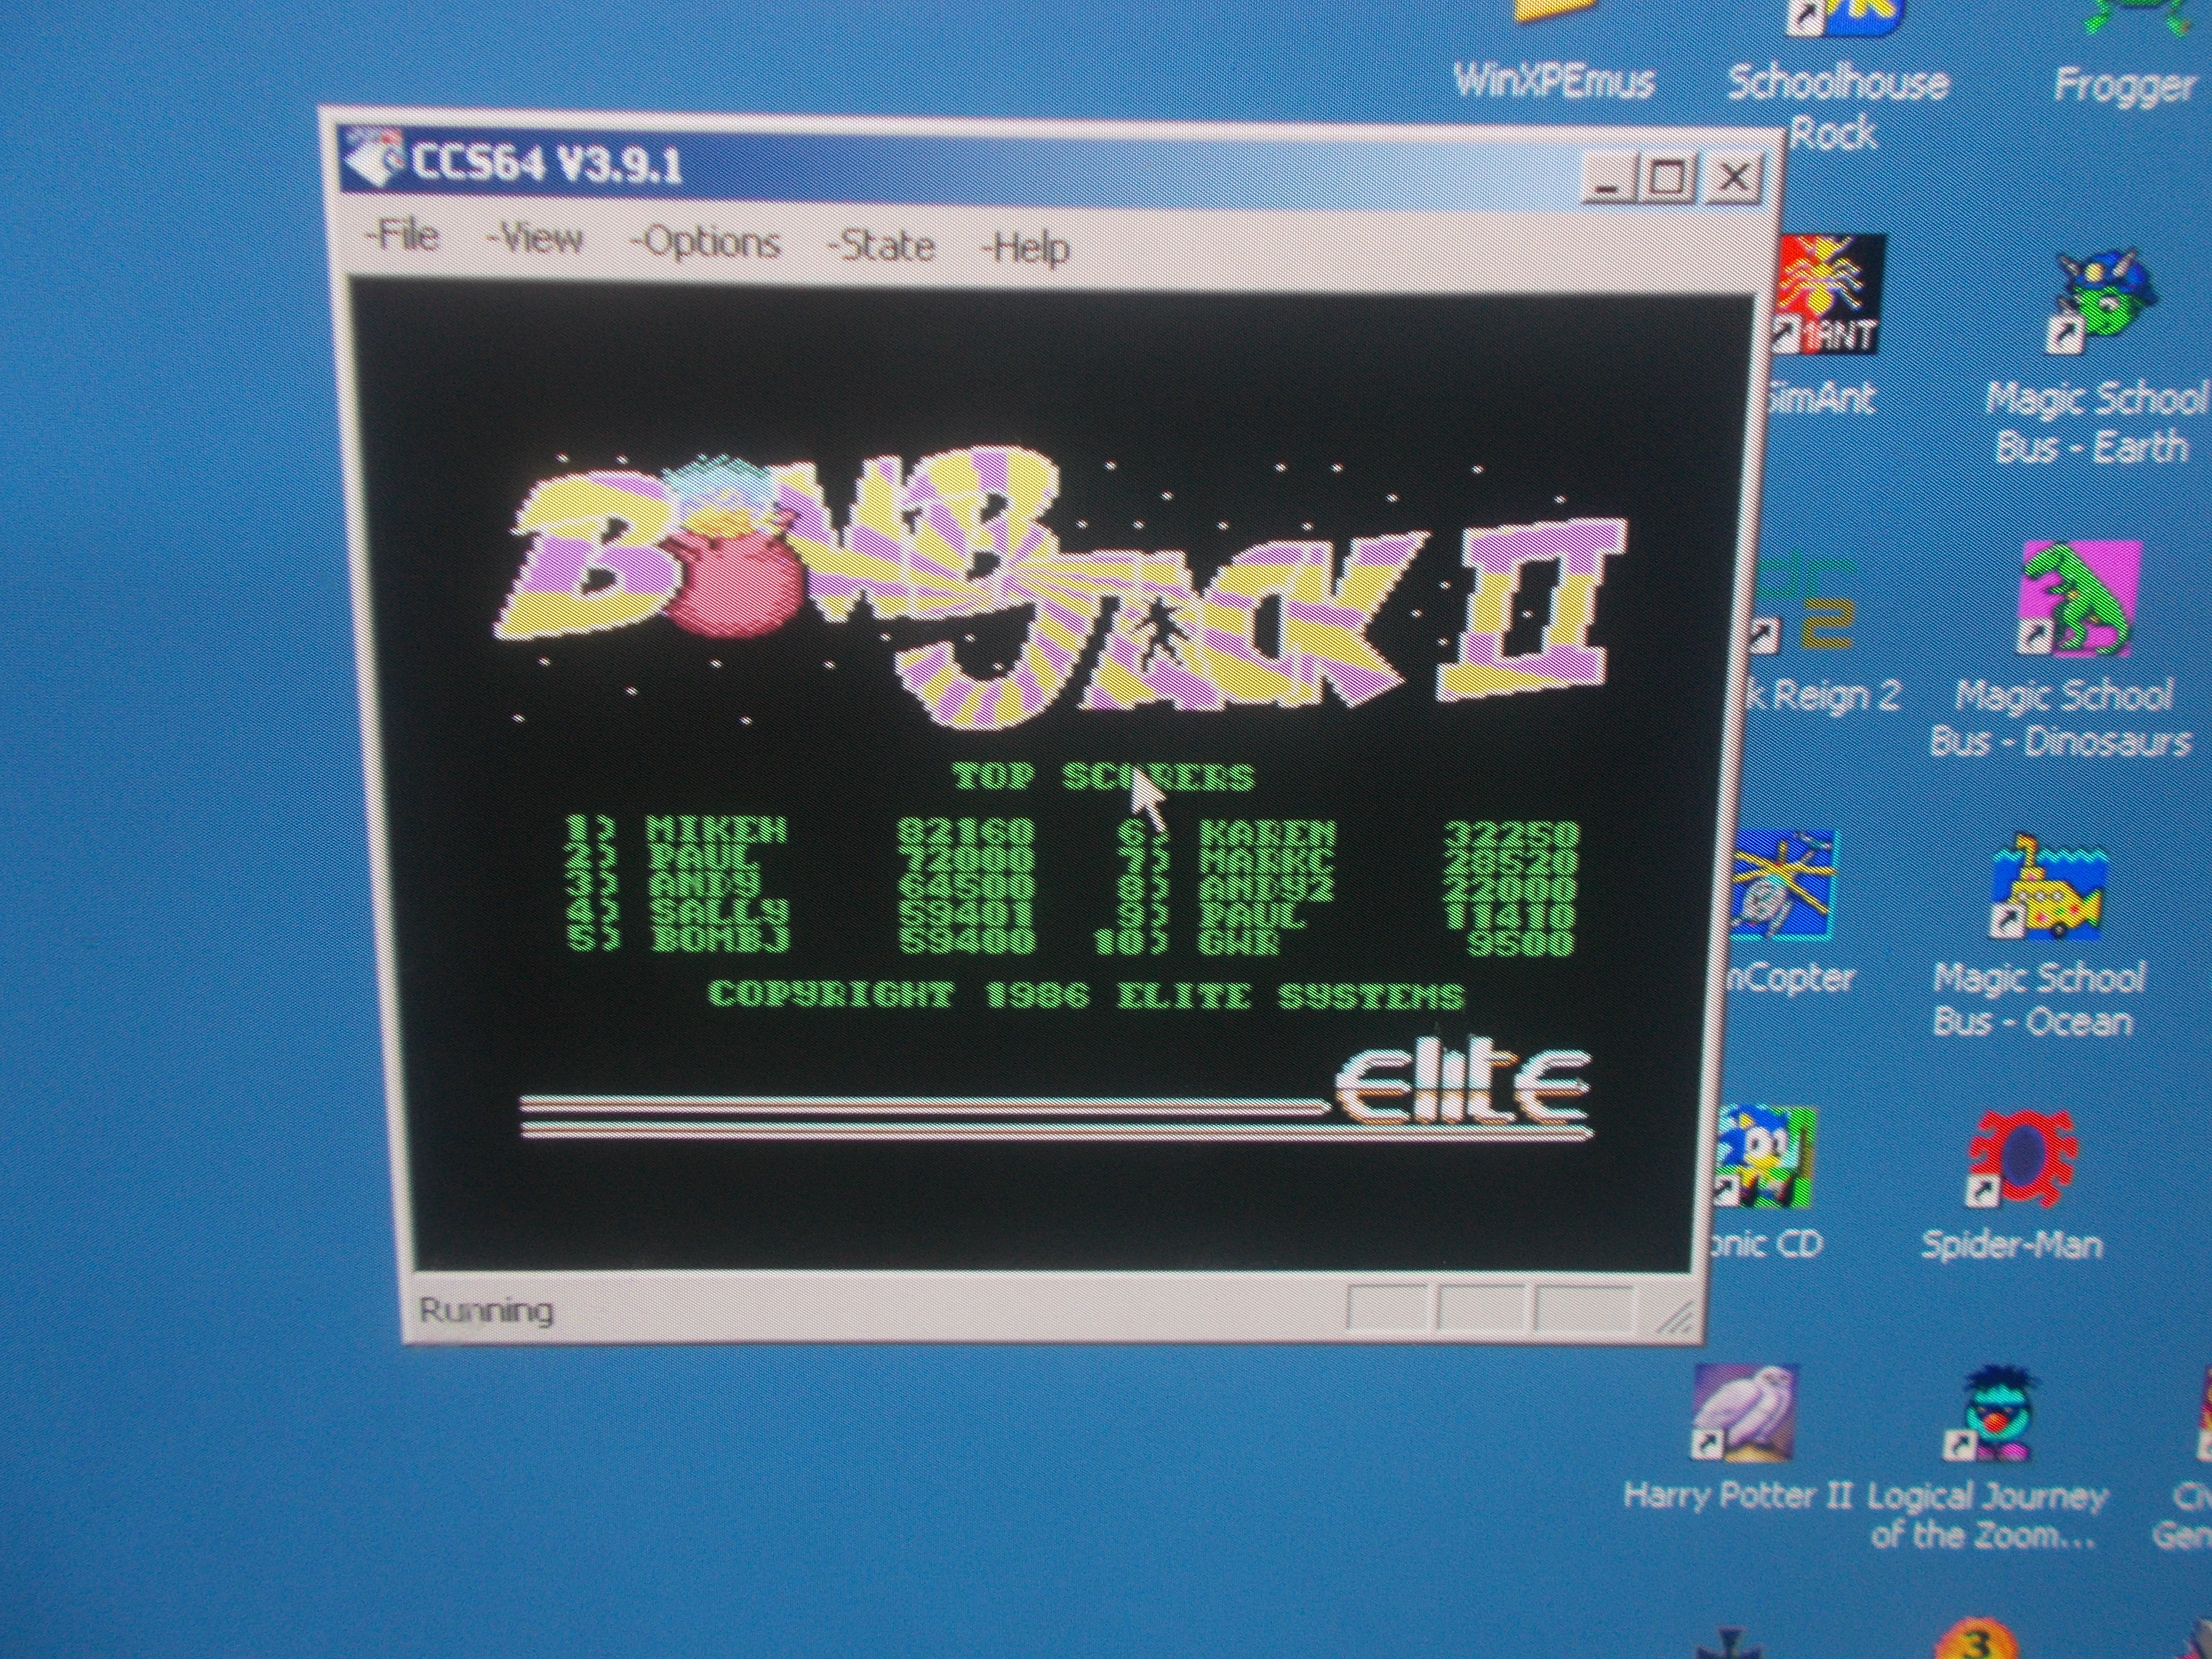 DuckGWR: Bomb Jack II (Commodore 64 Emulated) 9,500 points on 2014-10-03 19:17:53